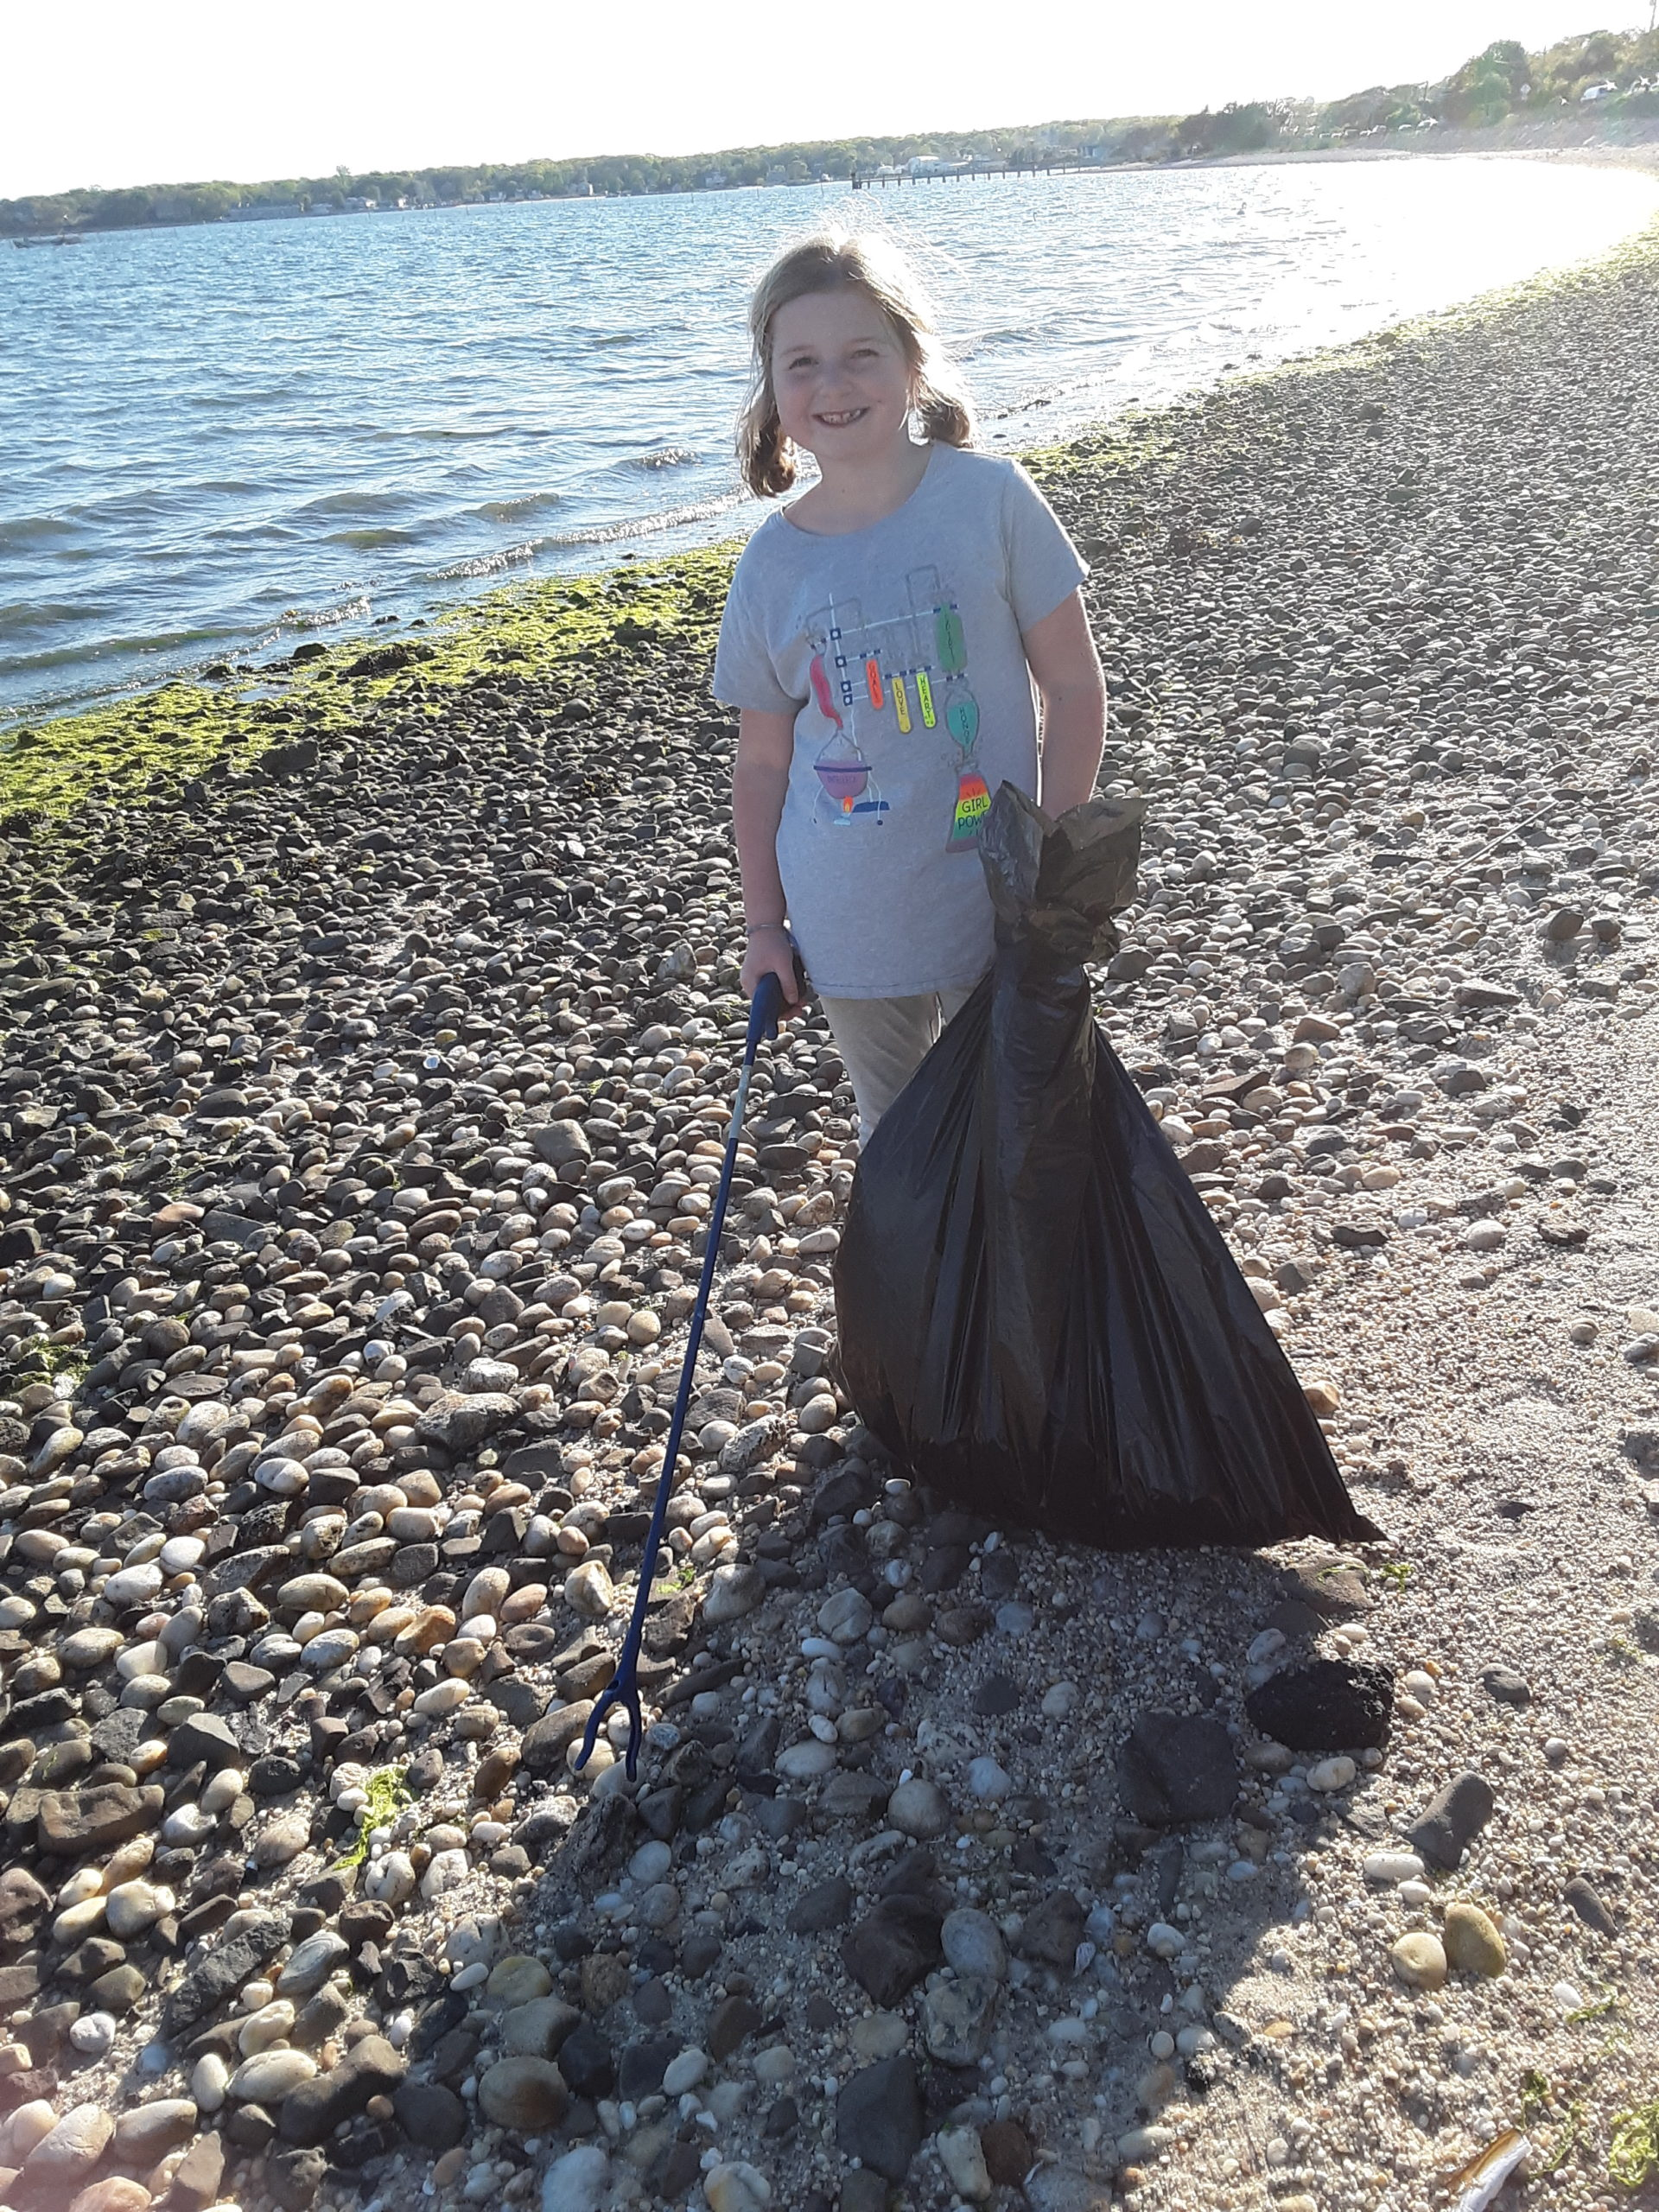 For the second year, Kay Dupree, a third grader at Southampton Elementary School, helped her grandmother clean up the Peconic Road/Shinnecock bay beach as a part of the Great East End Cleanup.